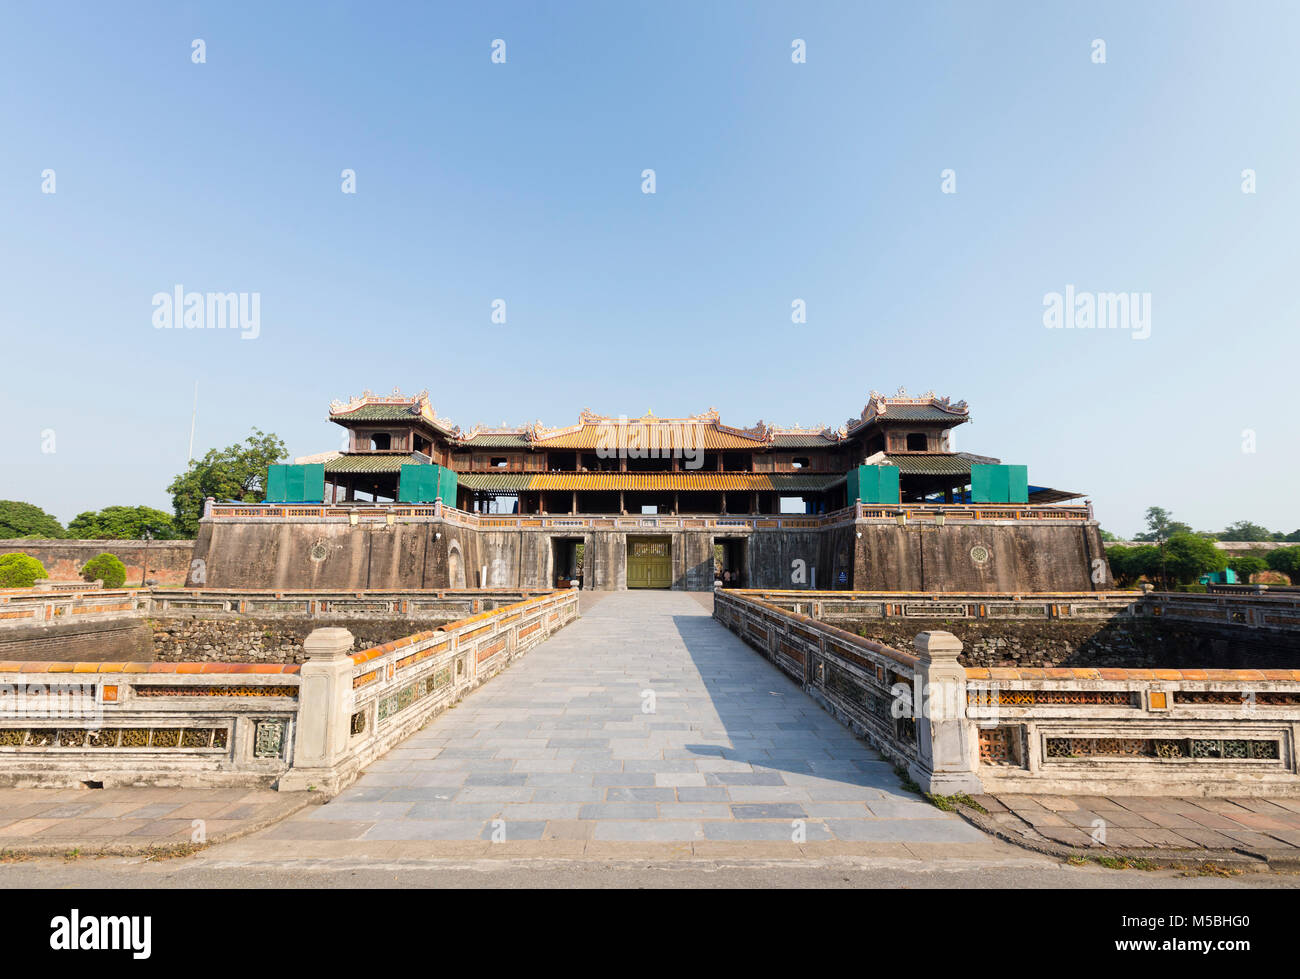 Morning gate, Ngo Mon gate, main entrance to the Imperial Palace Hoang Thanh, Forbidden City, Hue, Vietnam Stock Photo